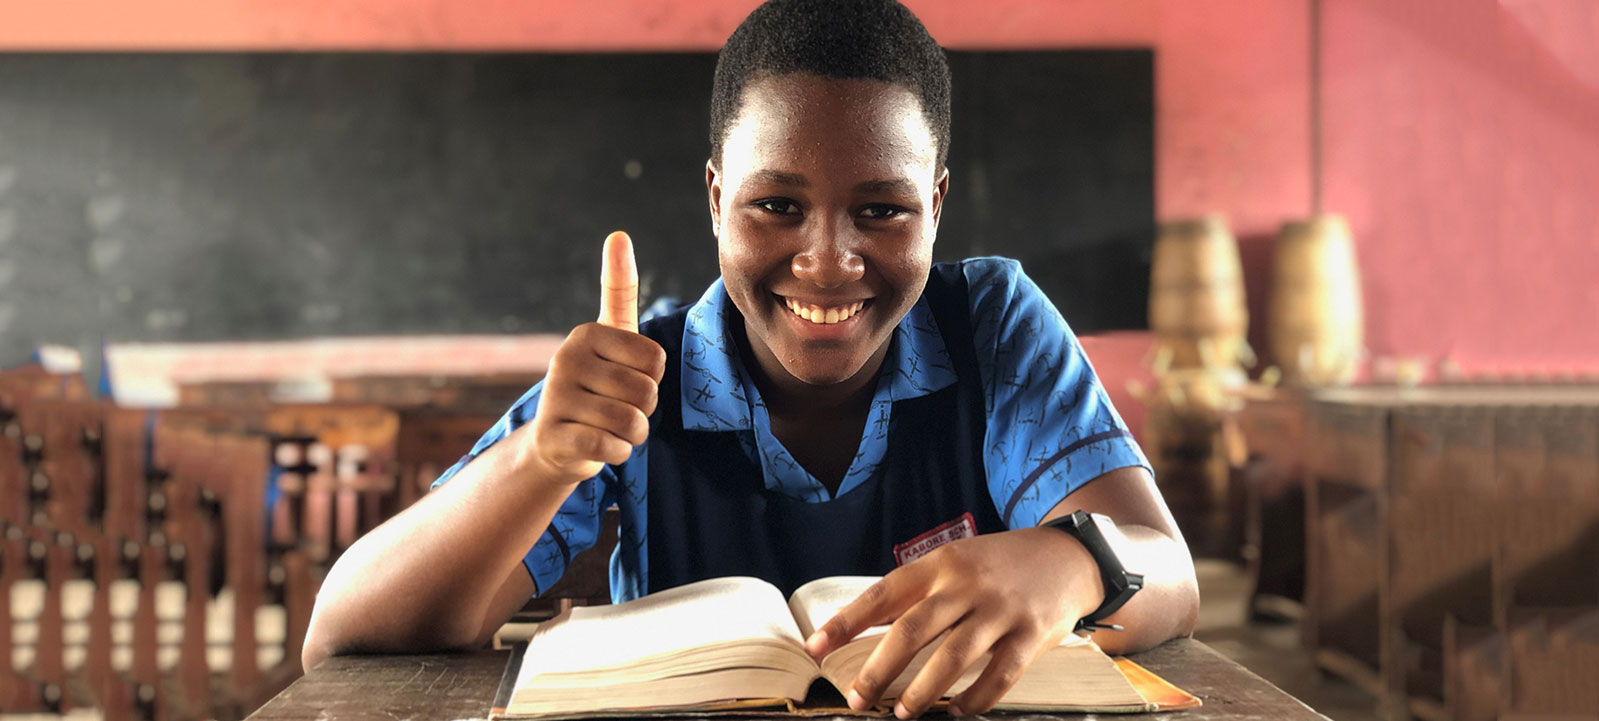 African Student giving Thumbs up